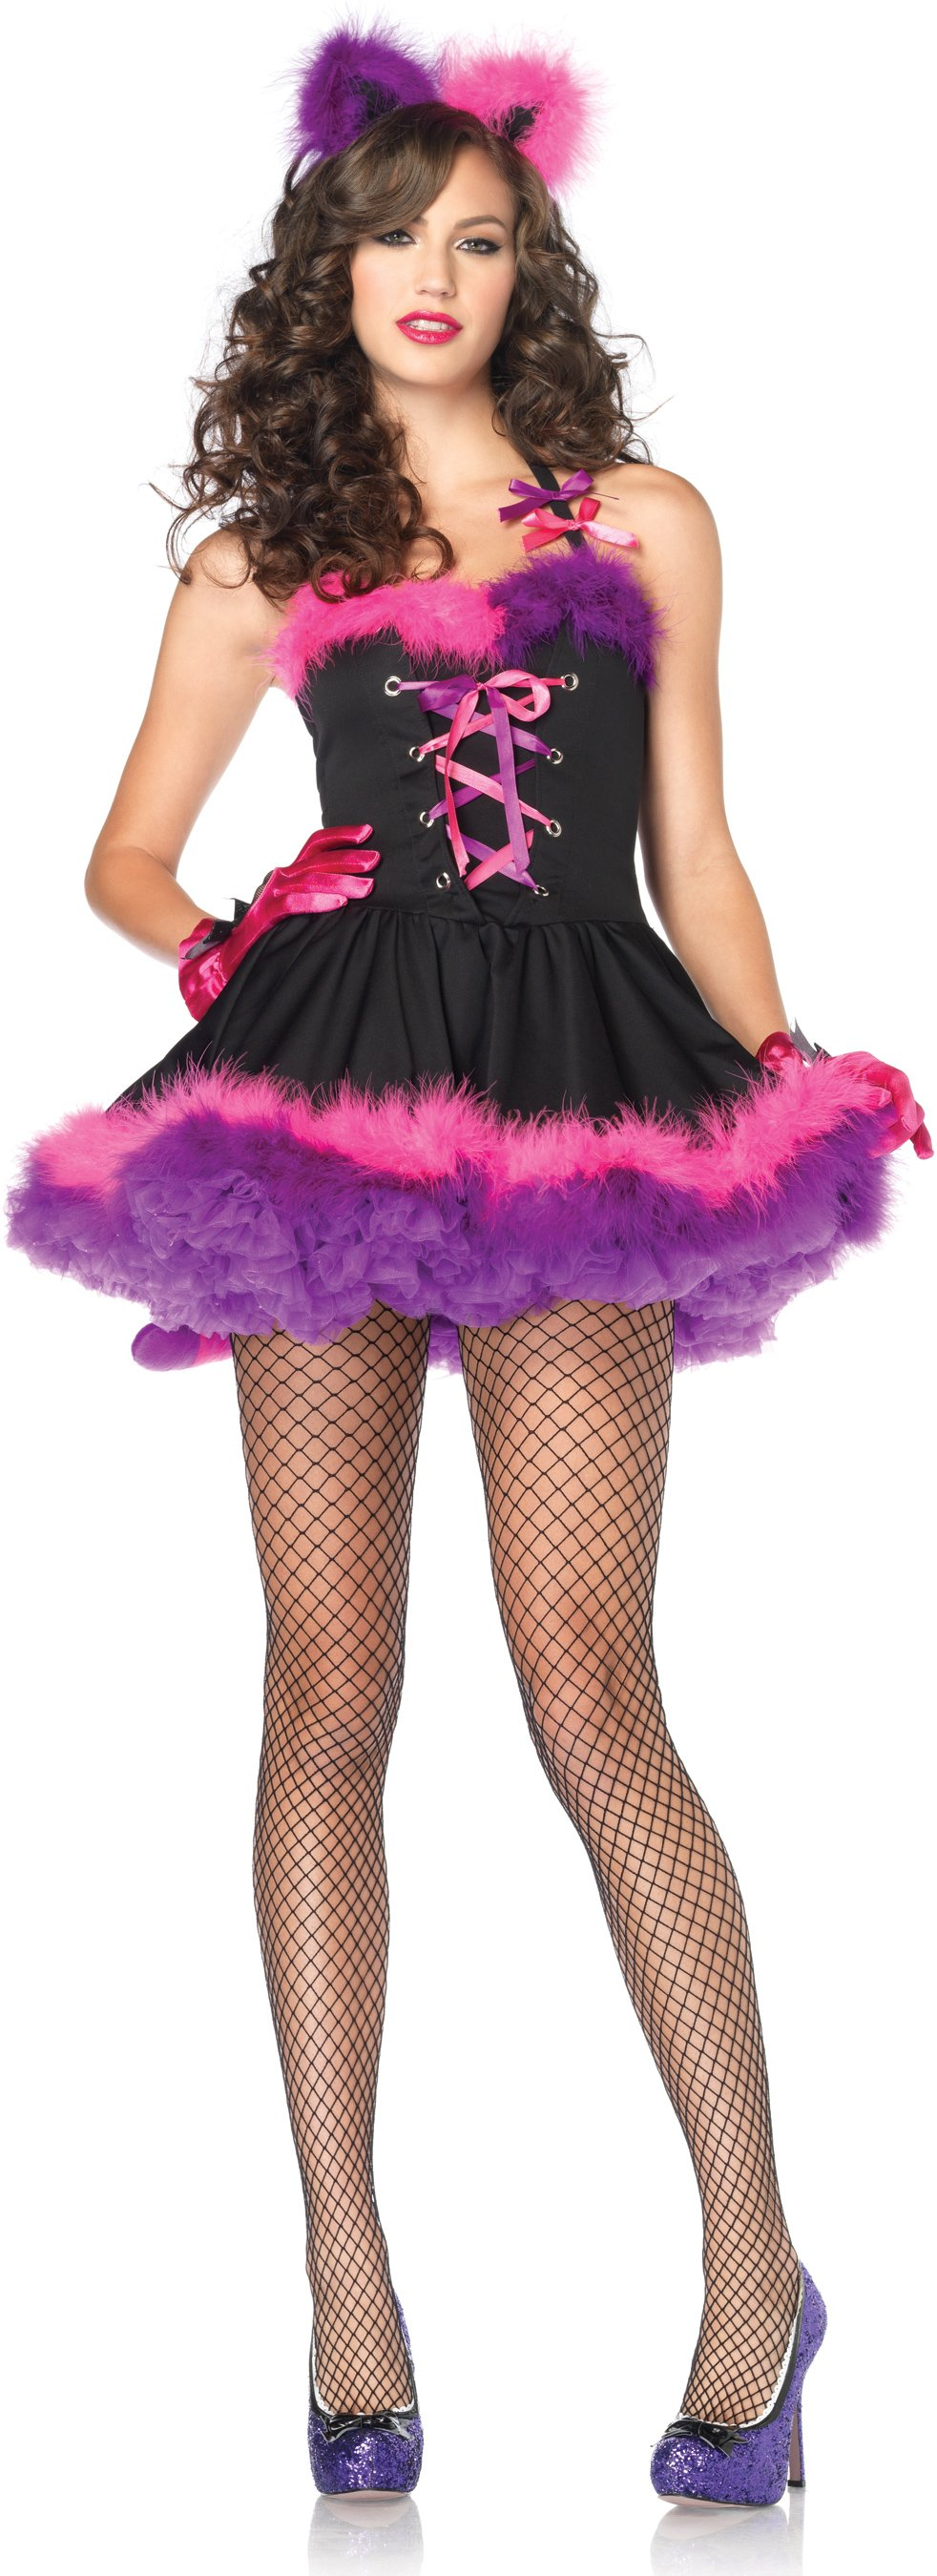 Mischievous Cheshire Cat Adult Costume